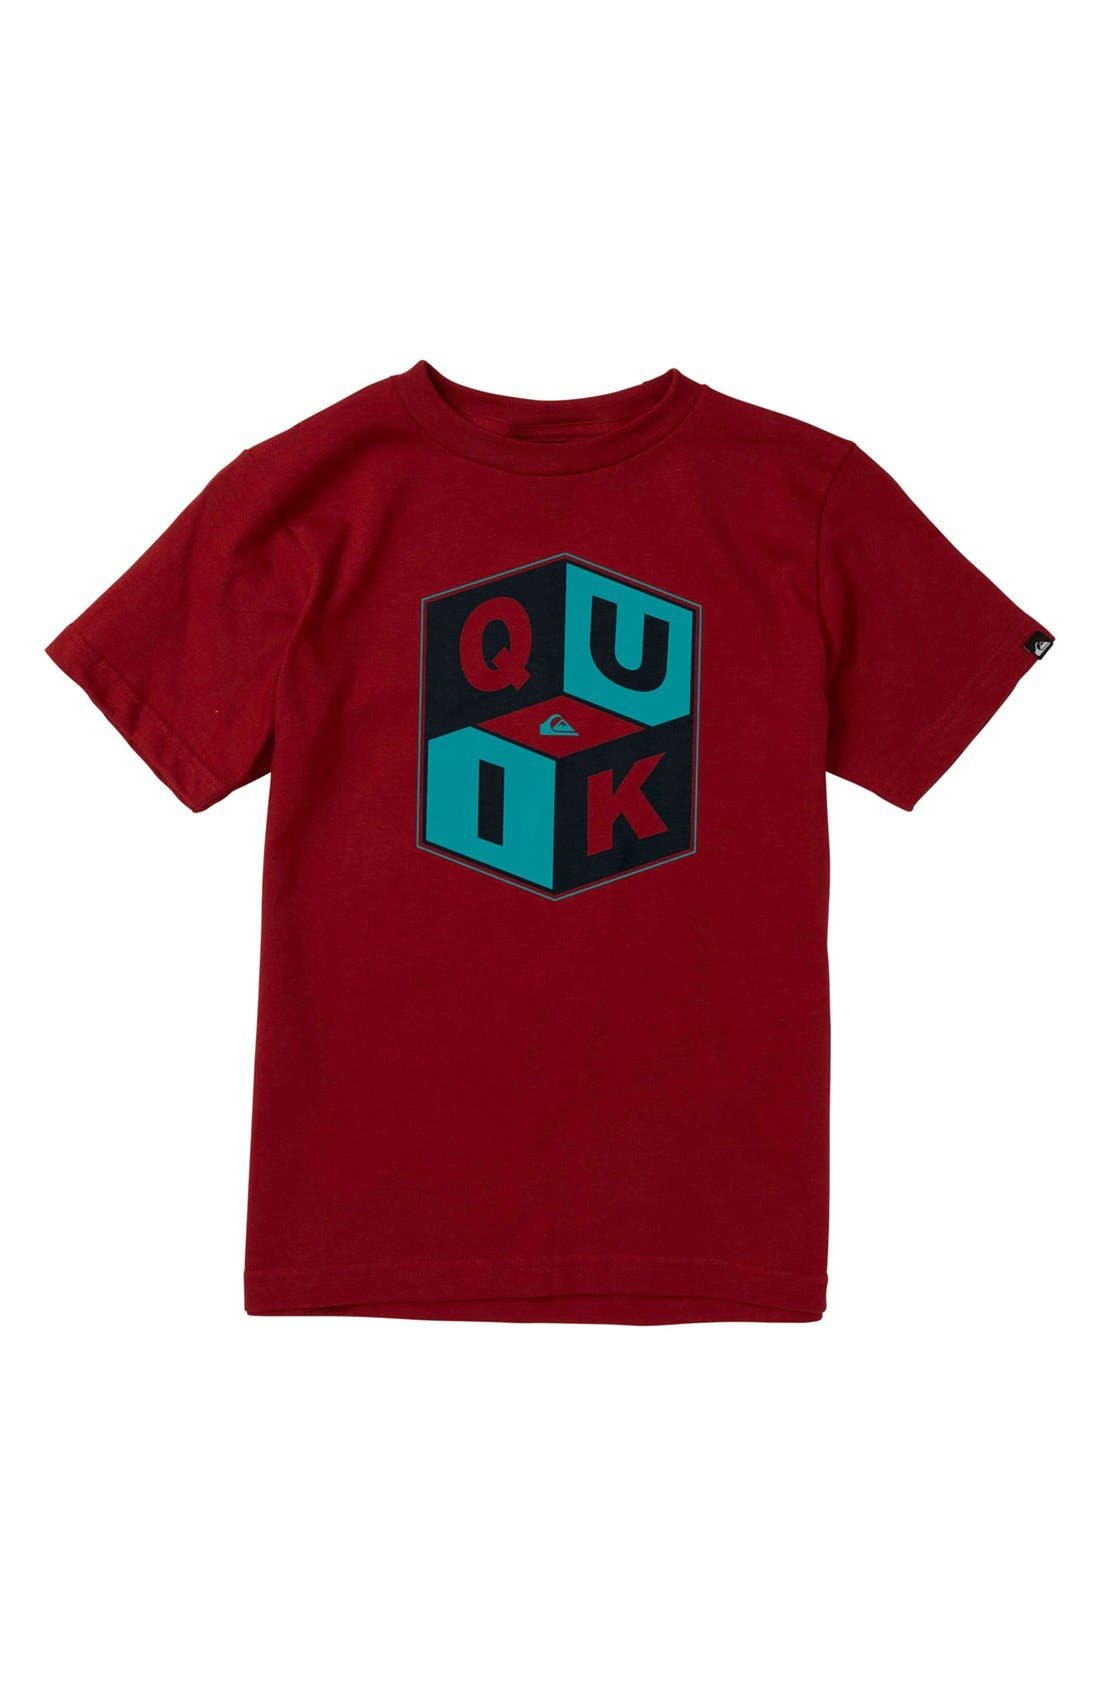 Main Image - Quiksilver 'Pop Command' T-Shirt (Toddler Boys)